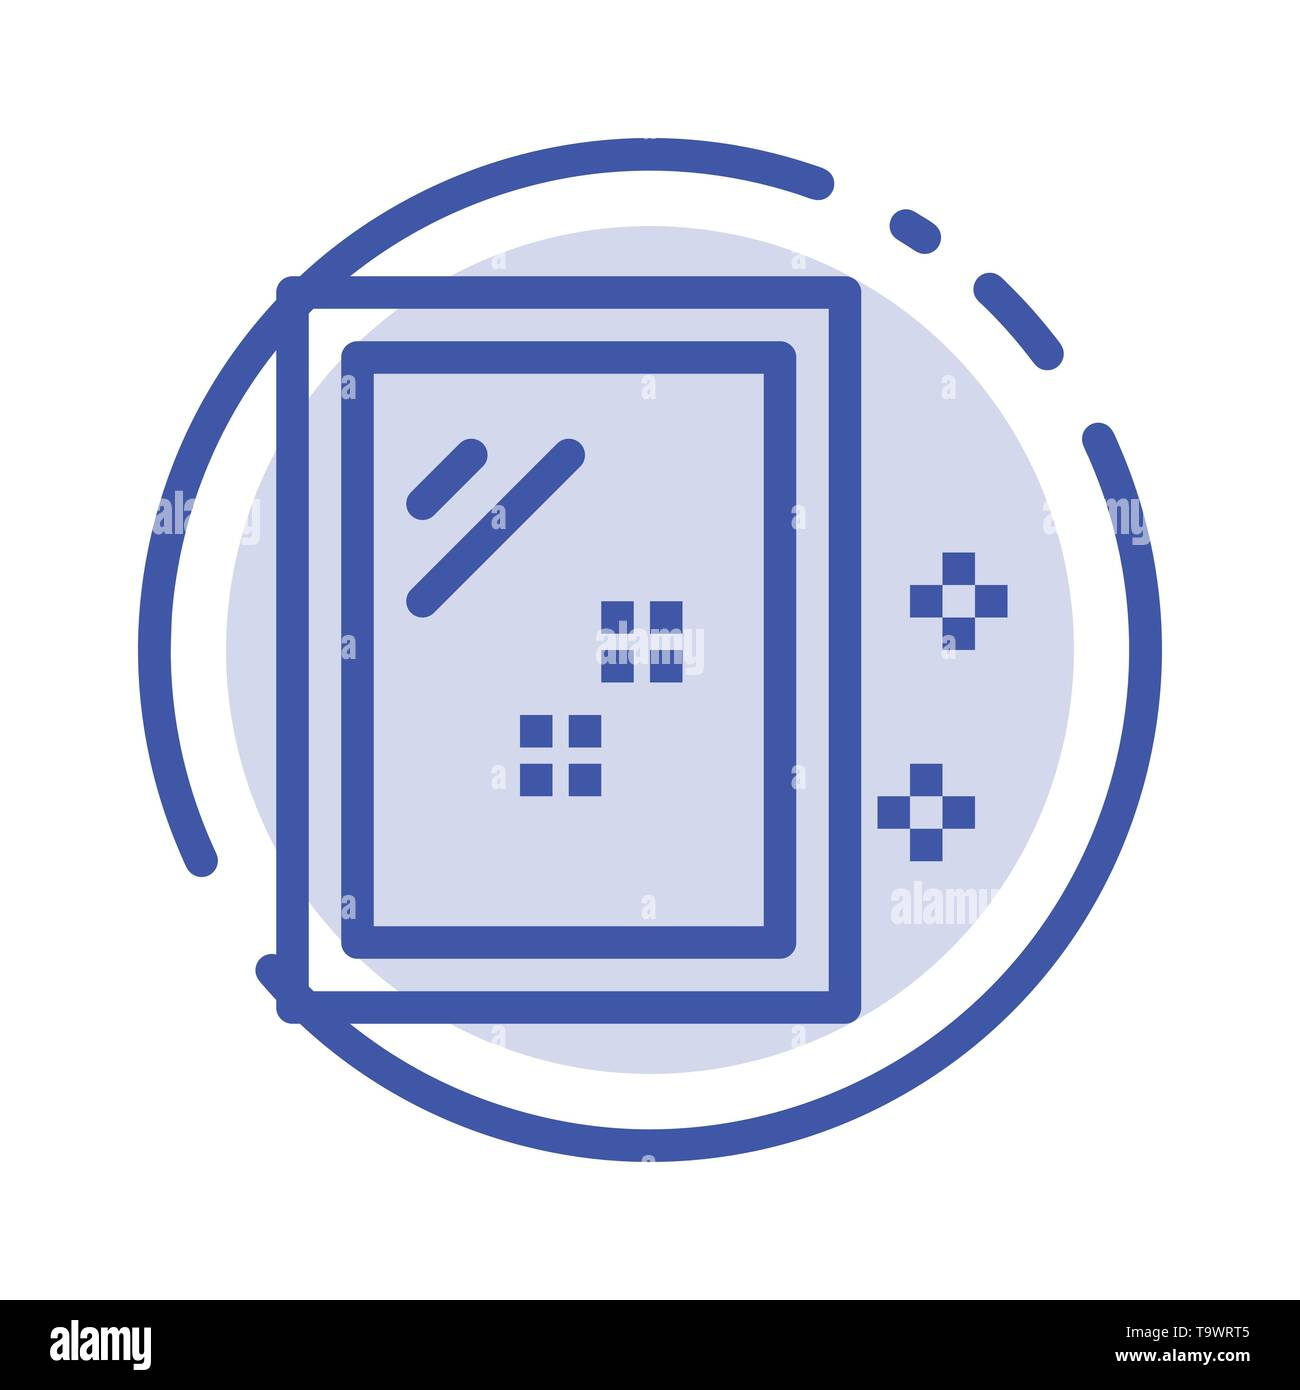 Door, Mirror, Cleaning, Wash Blue Dotted Line Line Icon - Stock Image